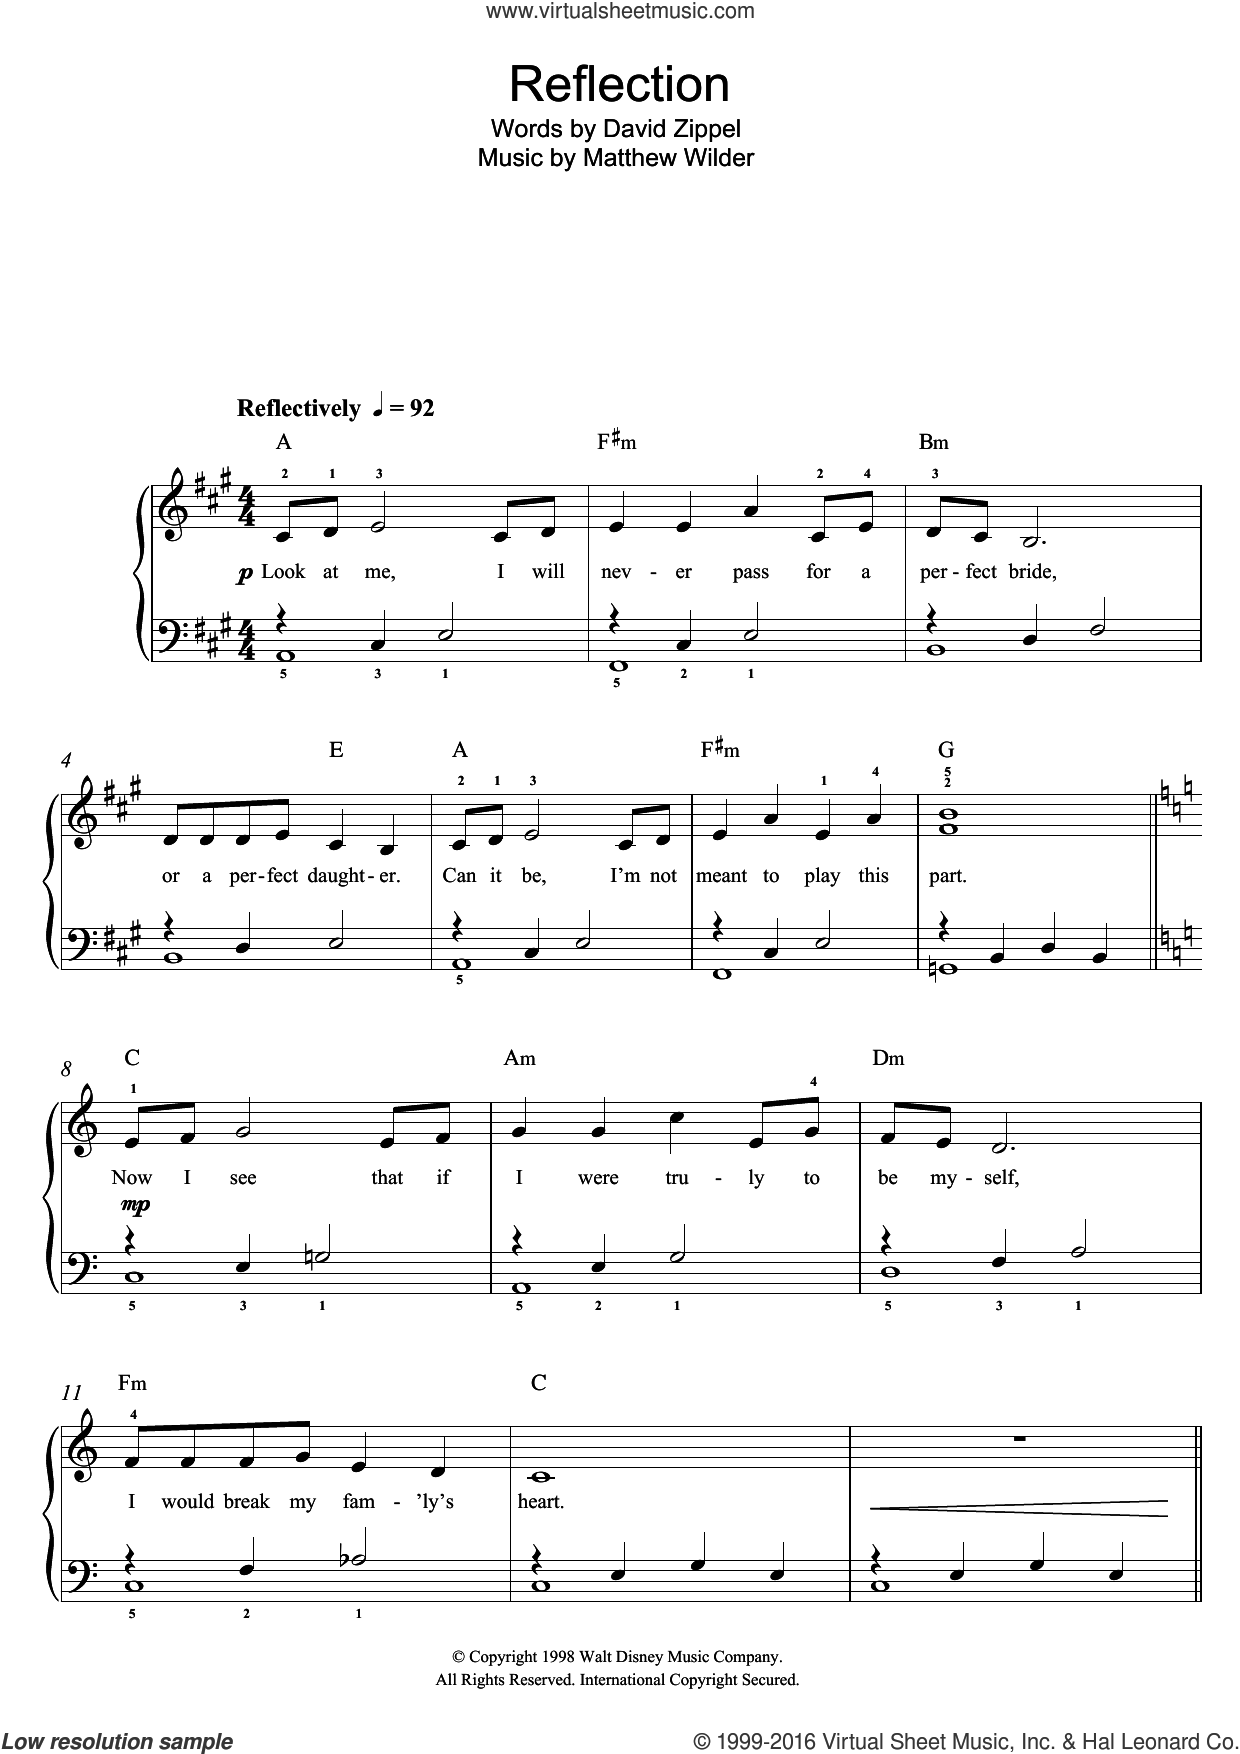 Reflection (from Mulan) sheet music for piano solo by Christina Aguilera, David Zippel and Matthew Wilder, easy skill level